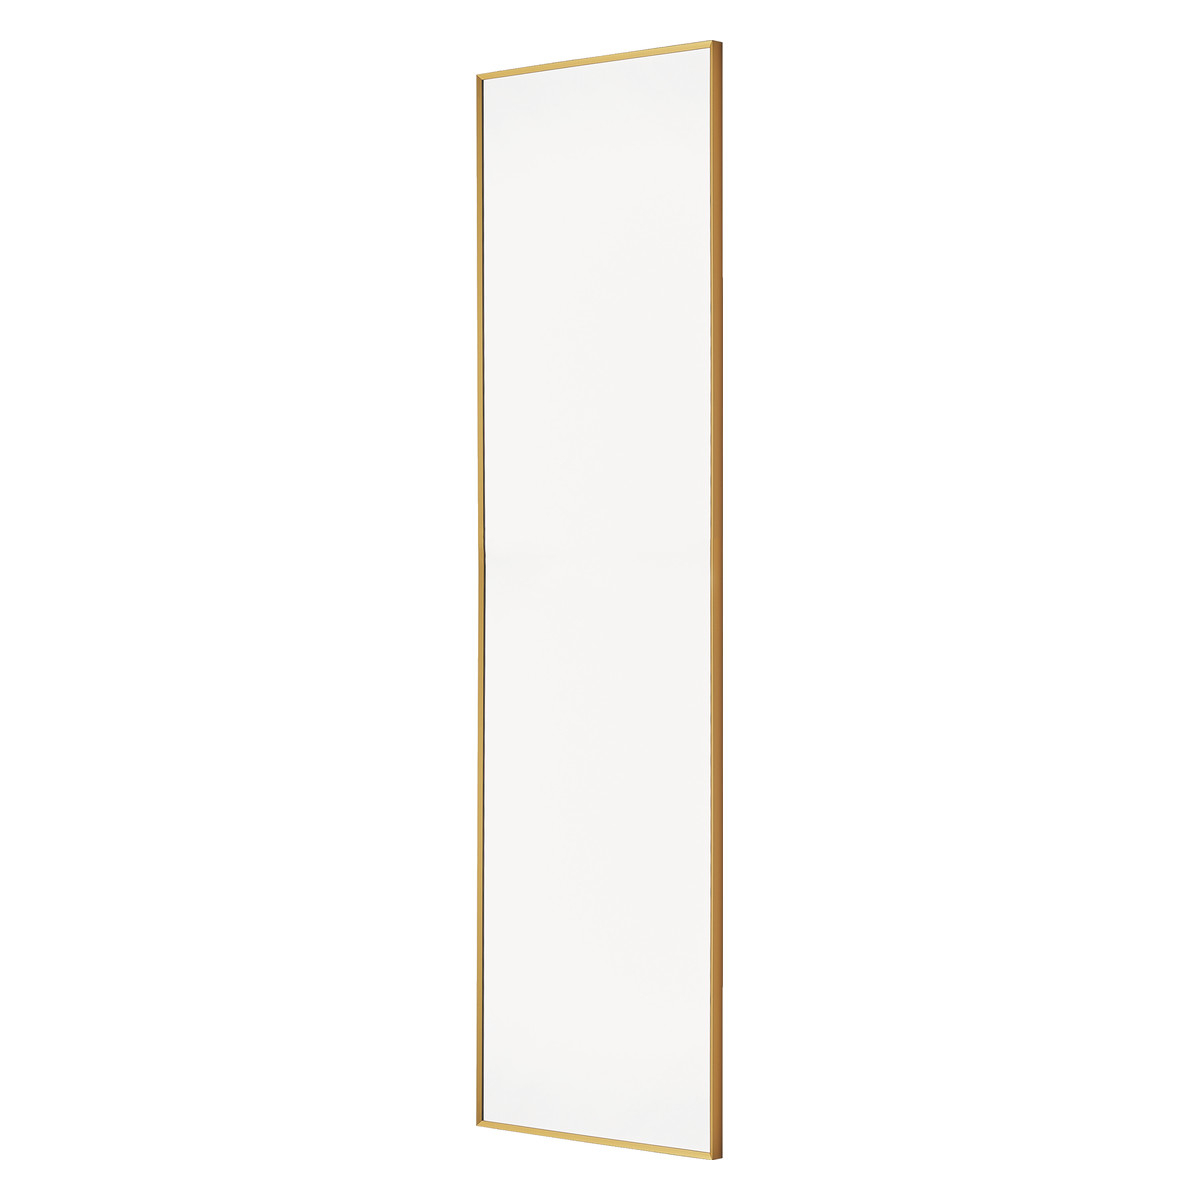 Widely Used Long Thin Wall Mirrors Inside Kupari 40 X 140cm Gold Full Length Wall Mirror (View 15 of 20)